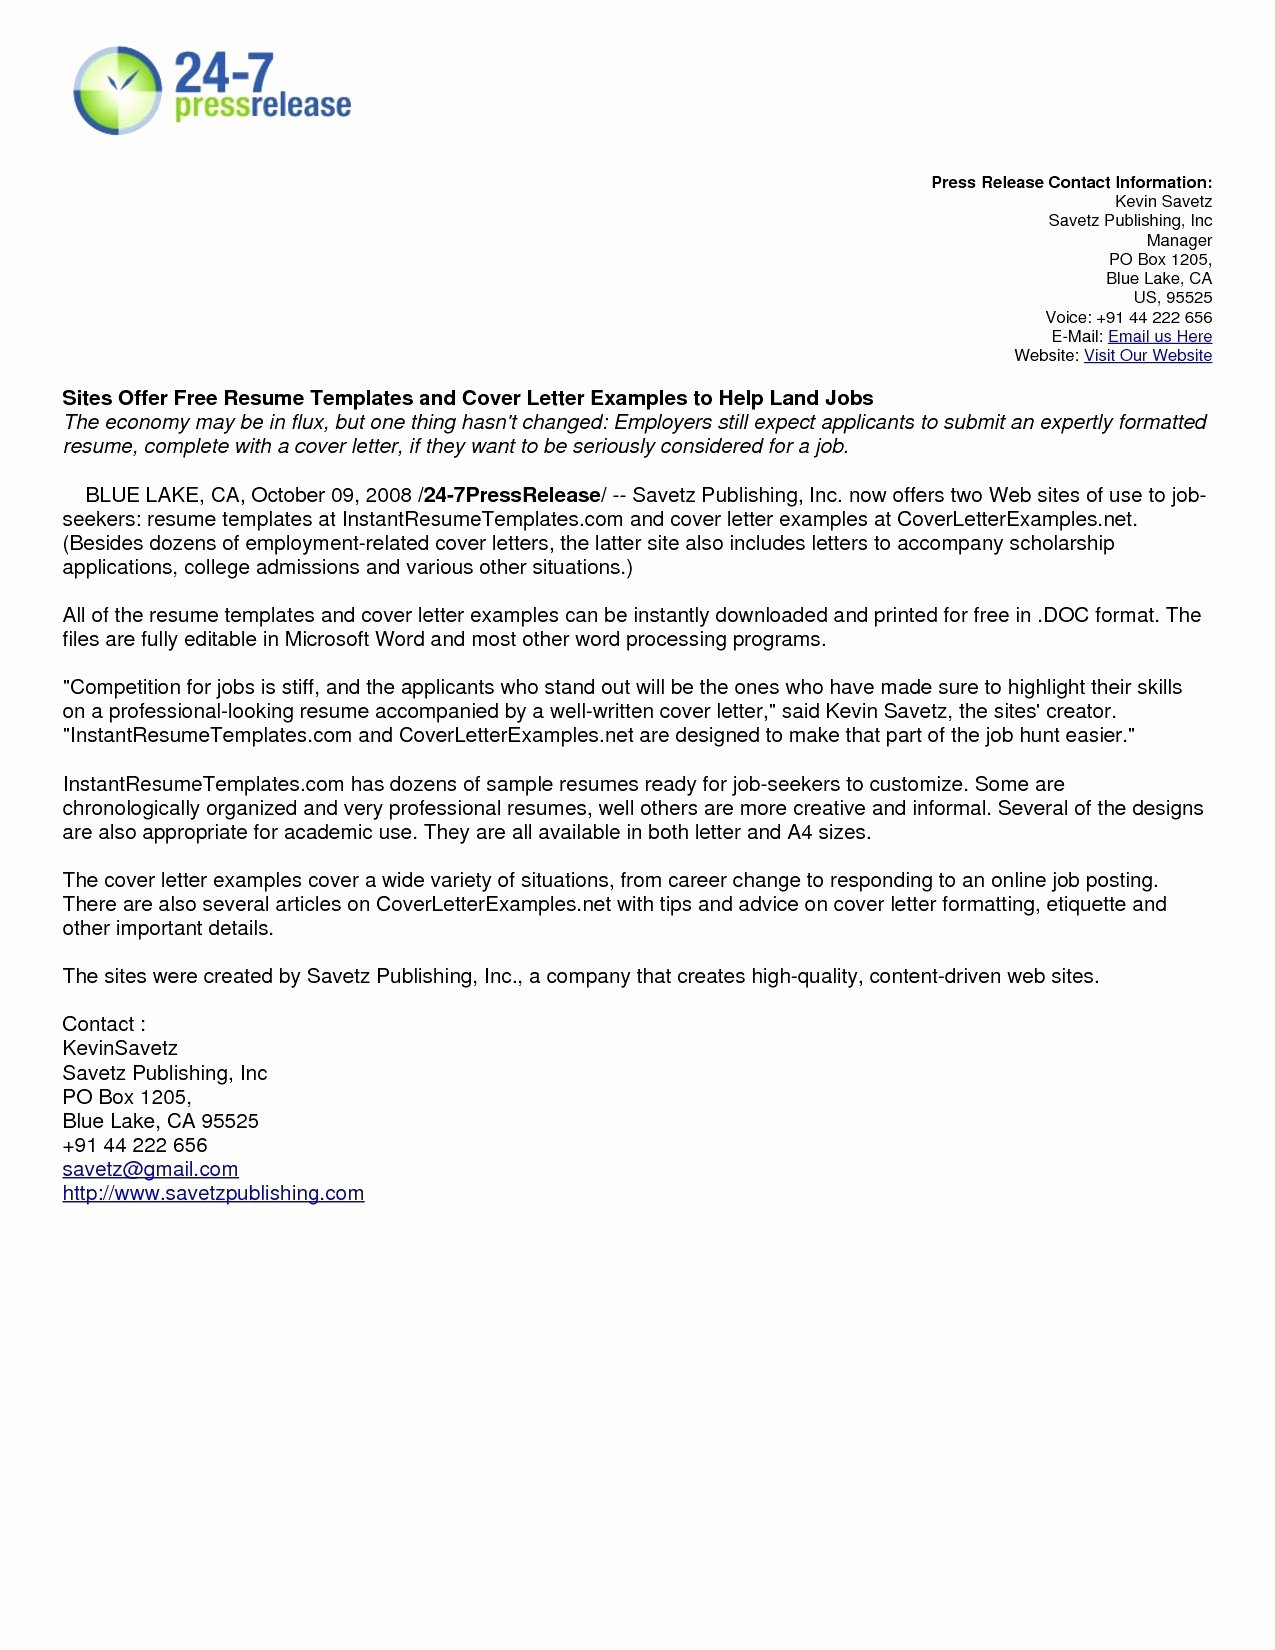 Letter format Google Docs Awesome Cover Letter Template Free Google Docs Collection